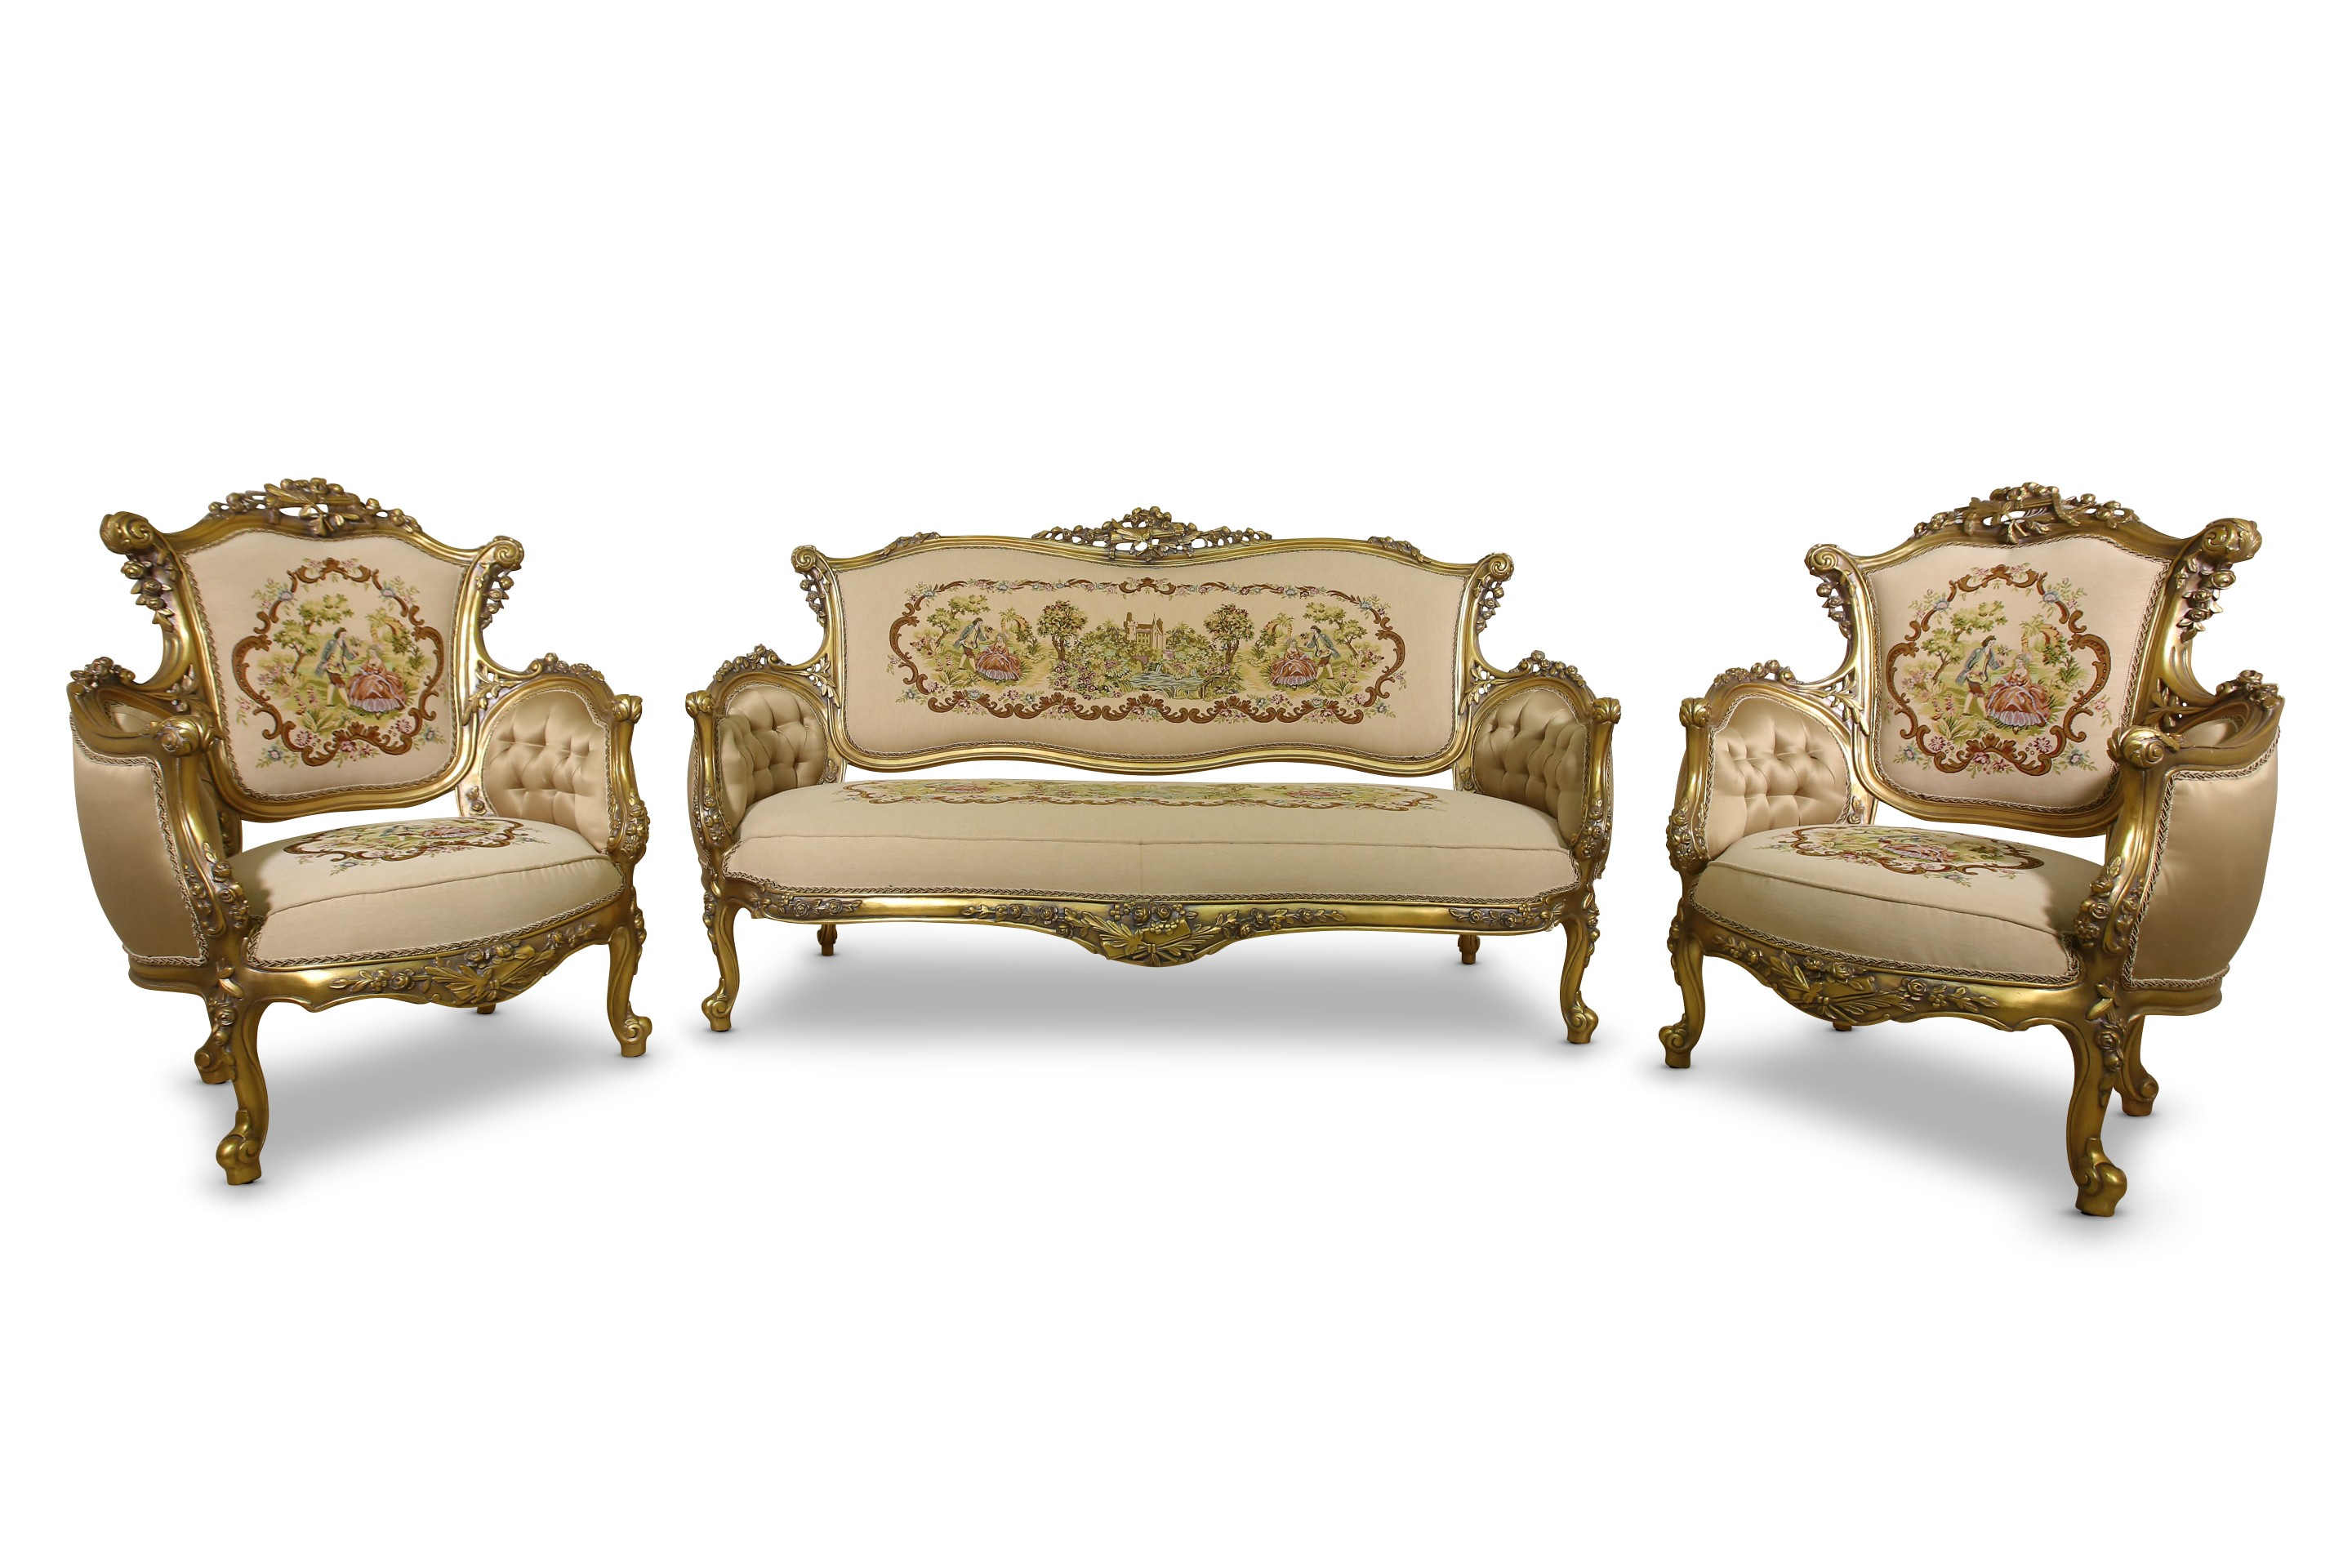 Toile and Satin upholstered Living Room Set